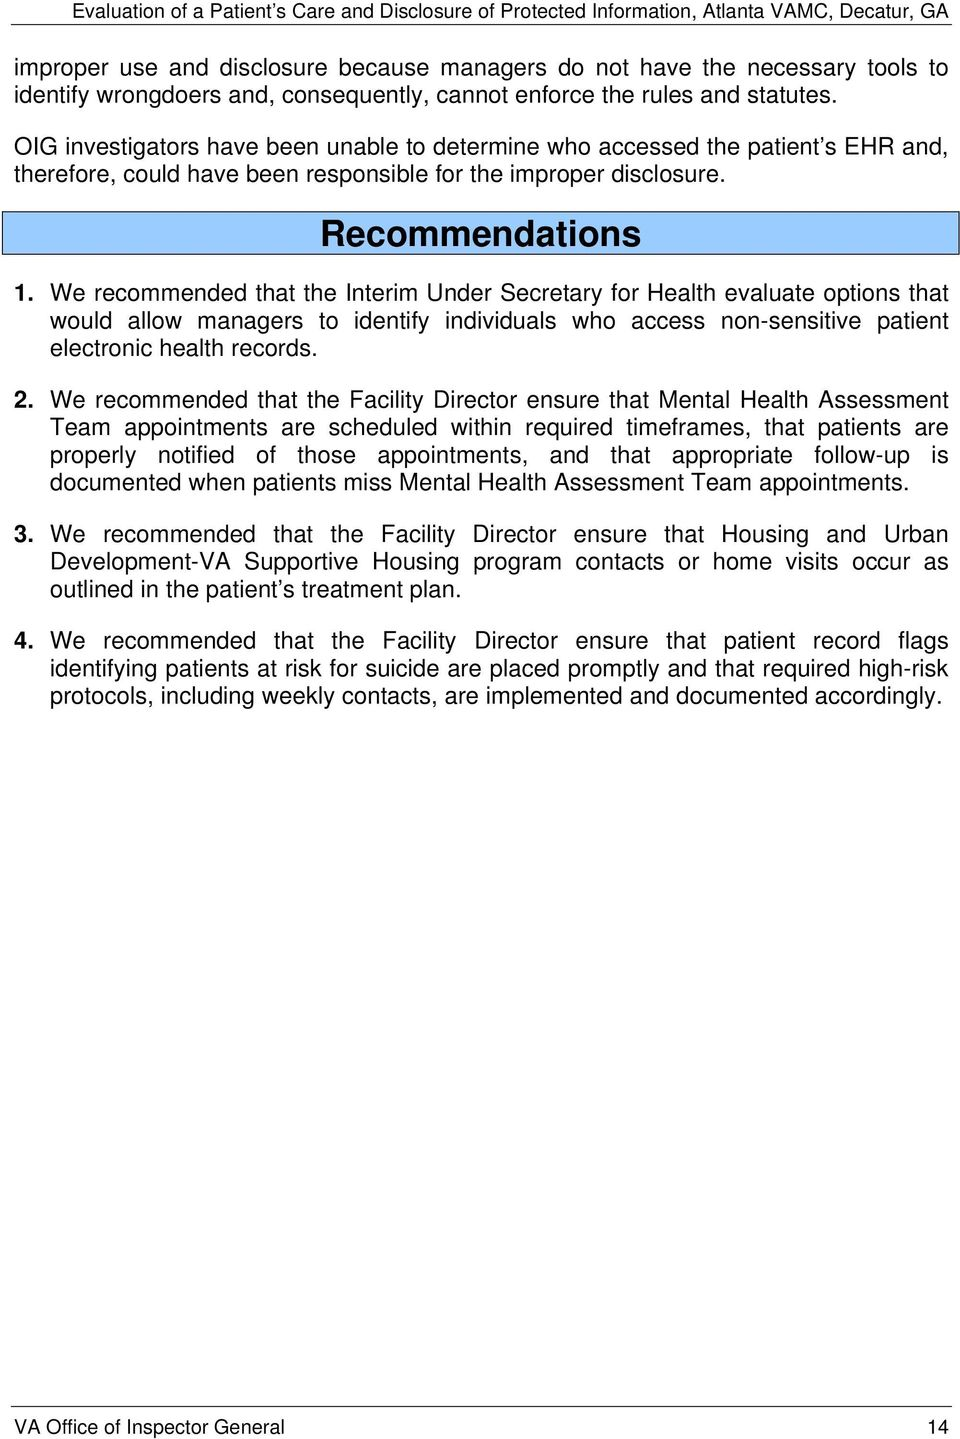 We recommended that the Interim Under Secretary for Health evaluate options that would allow managers to identify individuals who access non-sensitive patient electronic health records. 2.